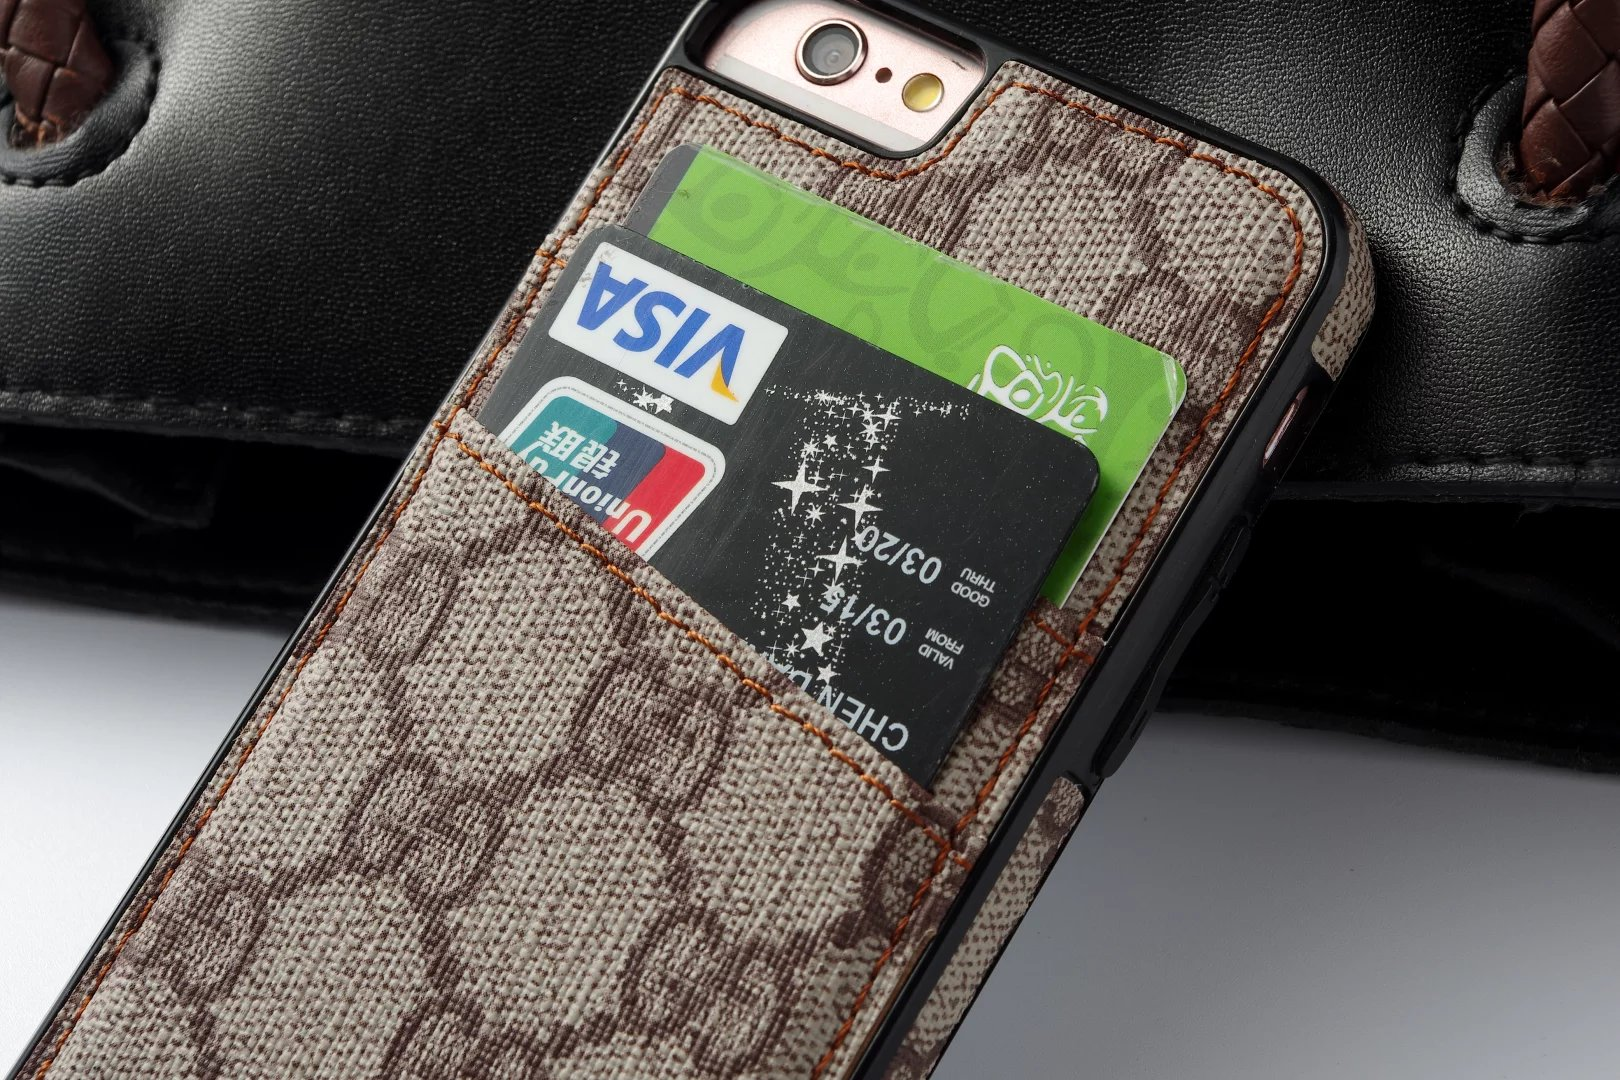 schutzhülle iphone edle iphone hüllen Louis Vuitton iphone6s hülle slim ca6s iphone 6s iphone hülle online shop neuestes i phone hüllen 6slbst gestalten iphone 6s schutzhülle iphone 6s s handyhülle 6slber bedrucken